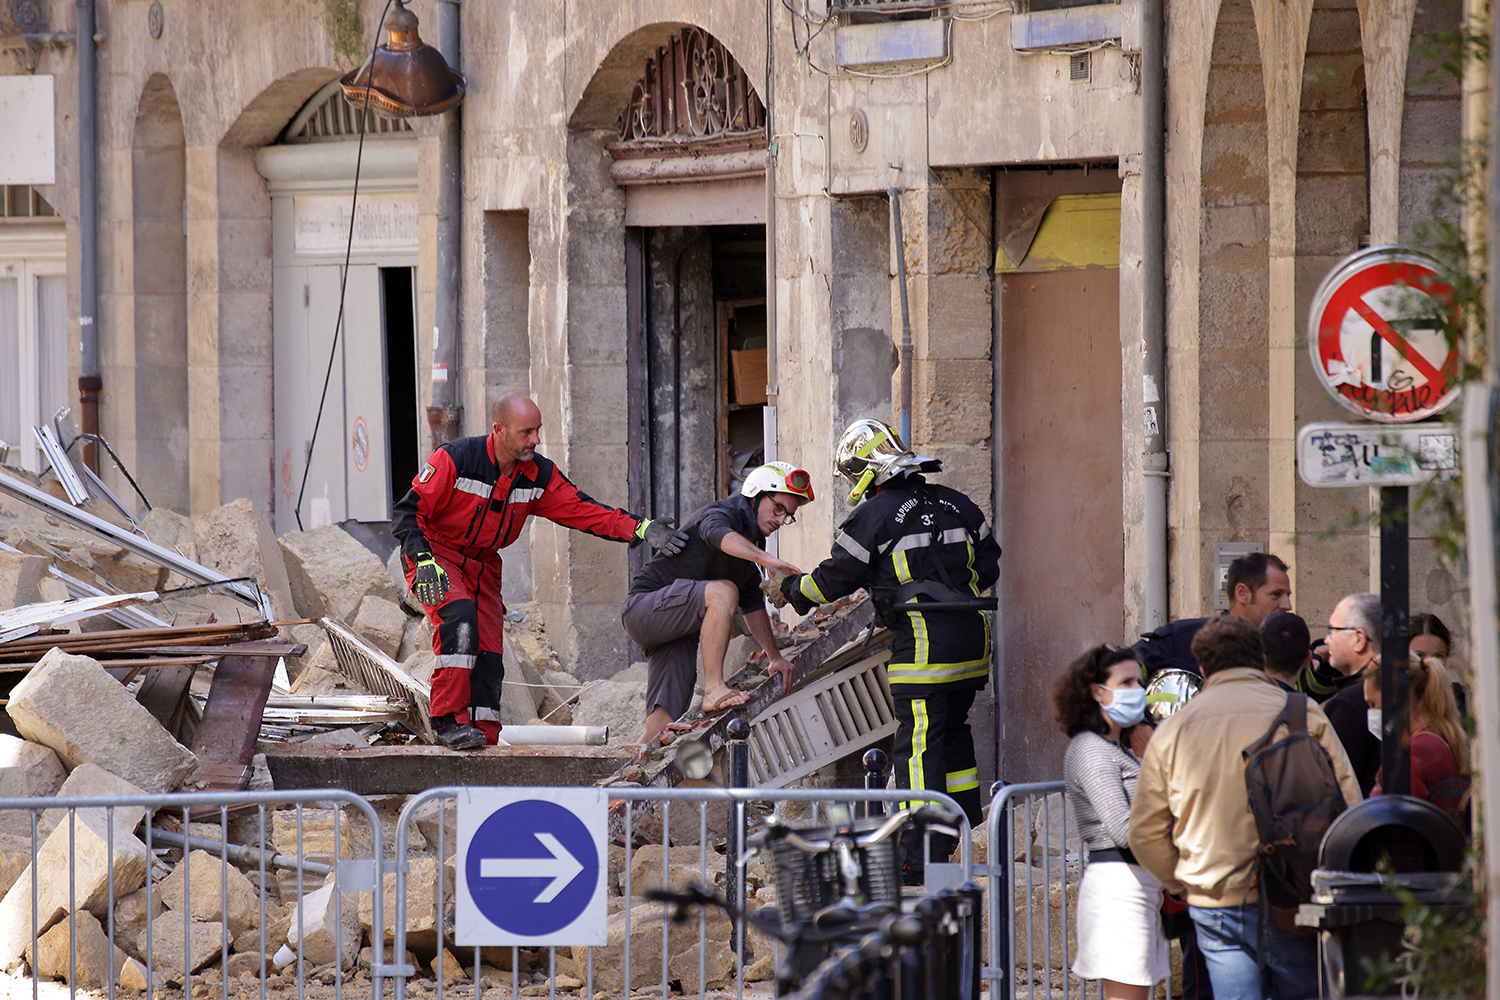 A person is evacuated by firefighters after a building collapsed in Bordeaux, France